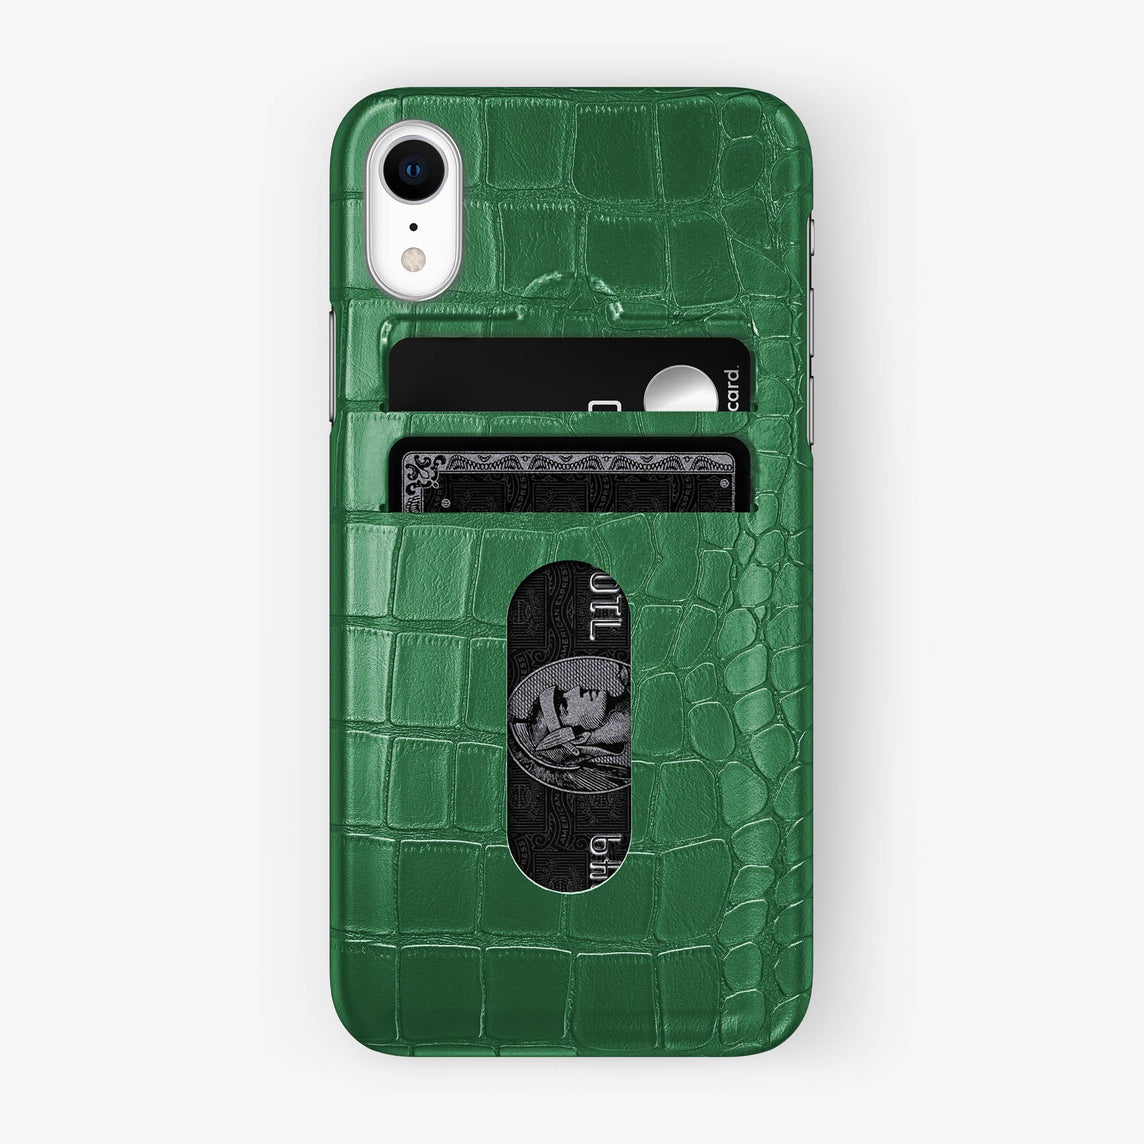 Alligator Card Holder Case iPhone Xr | Green - Stainless Steel